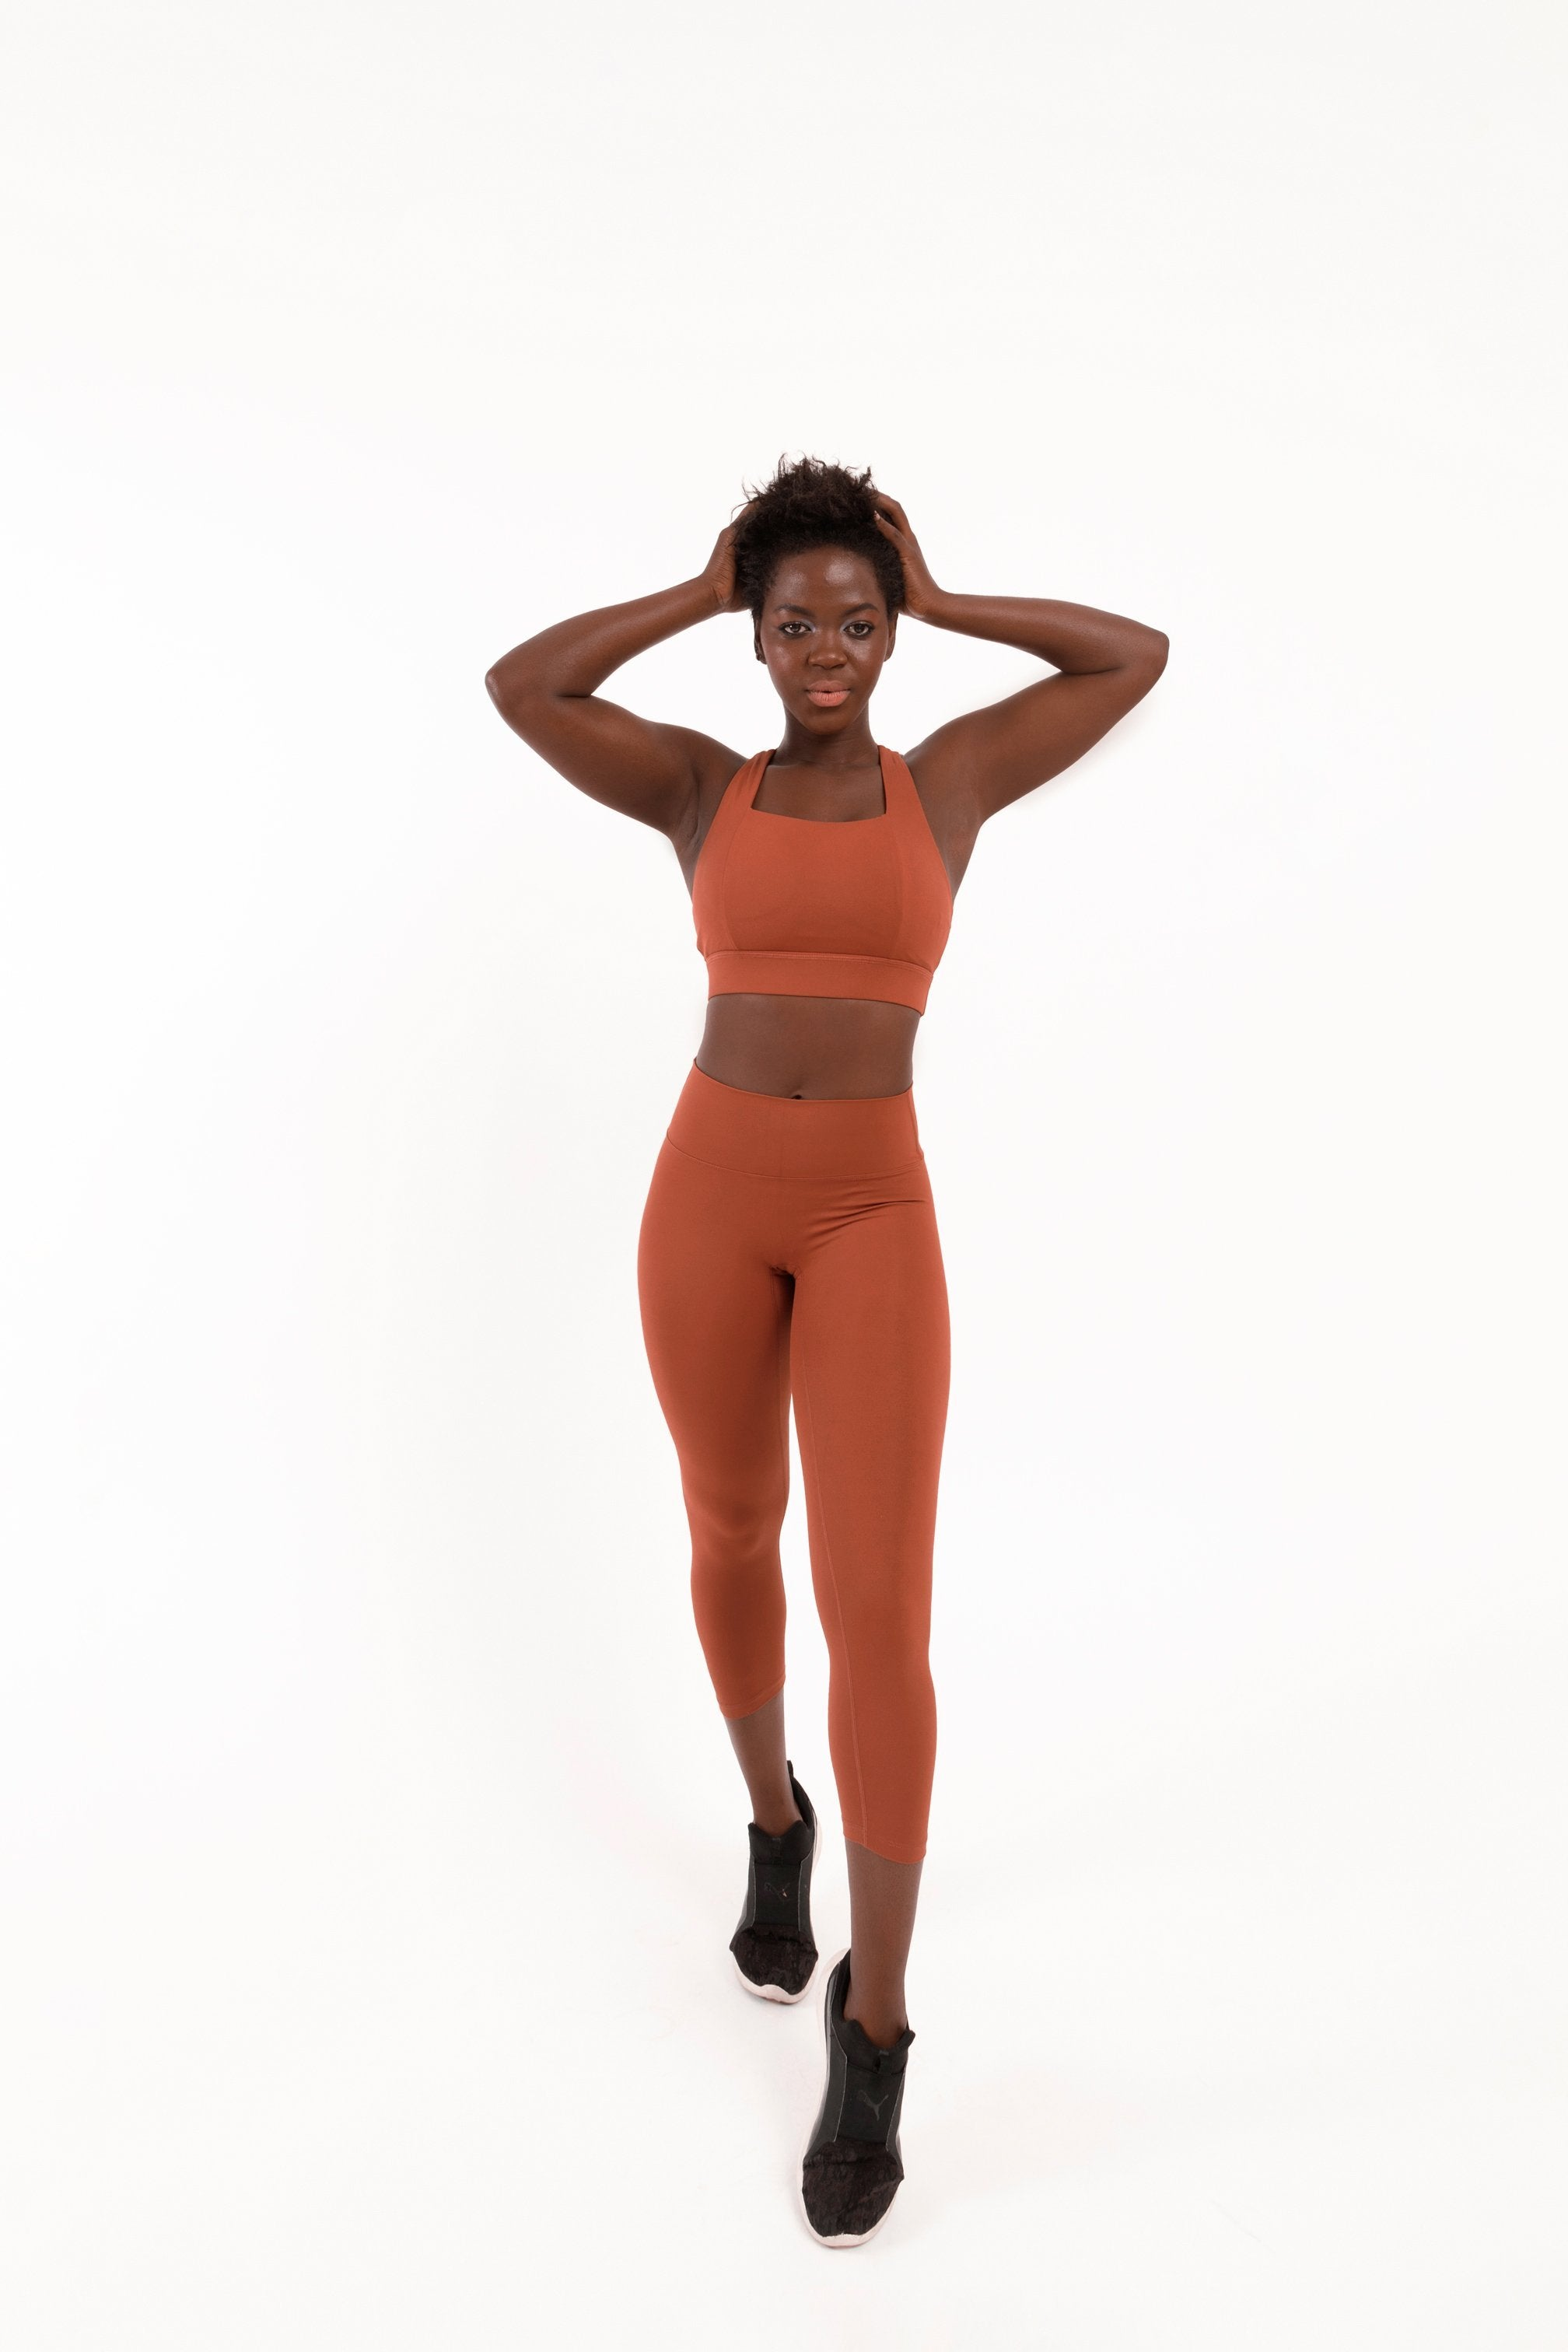 REBEL CARAMEL RED - ZIBA Activewear